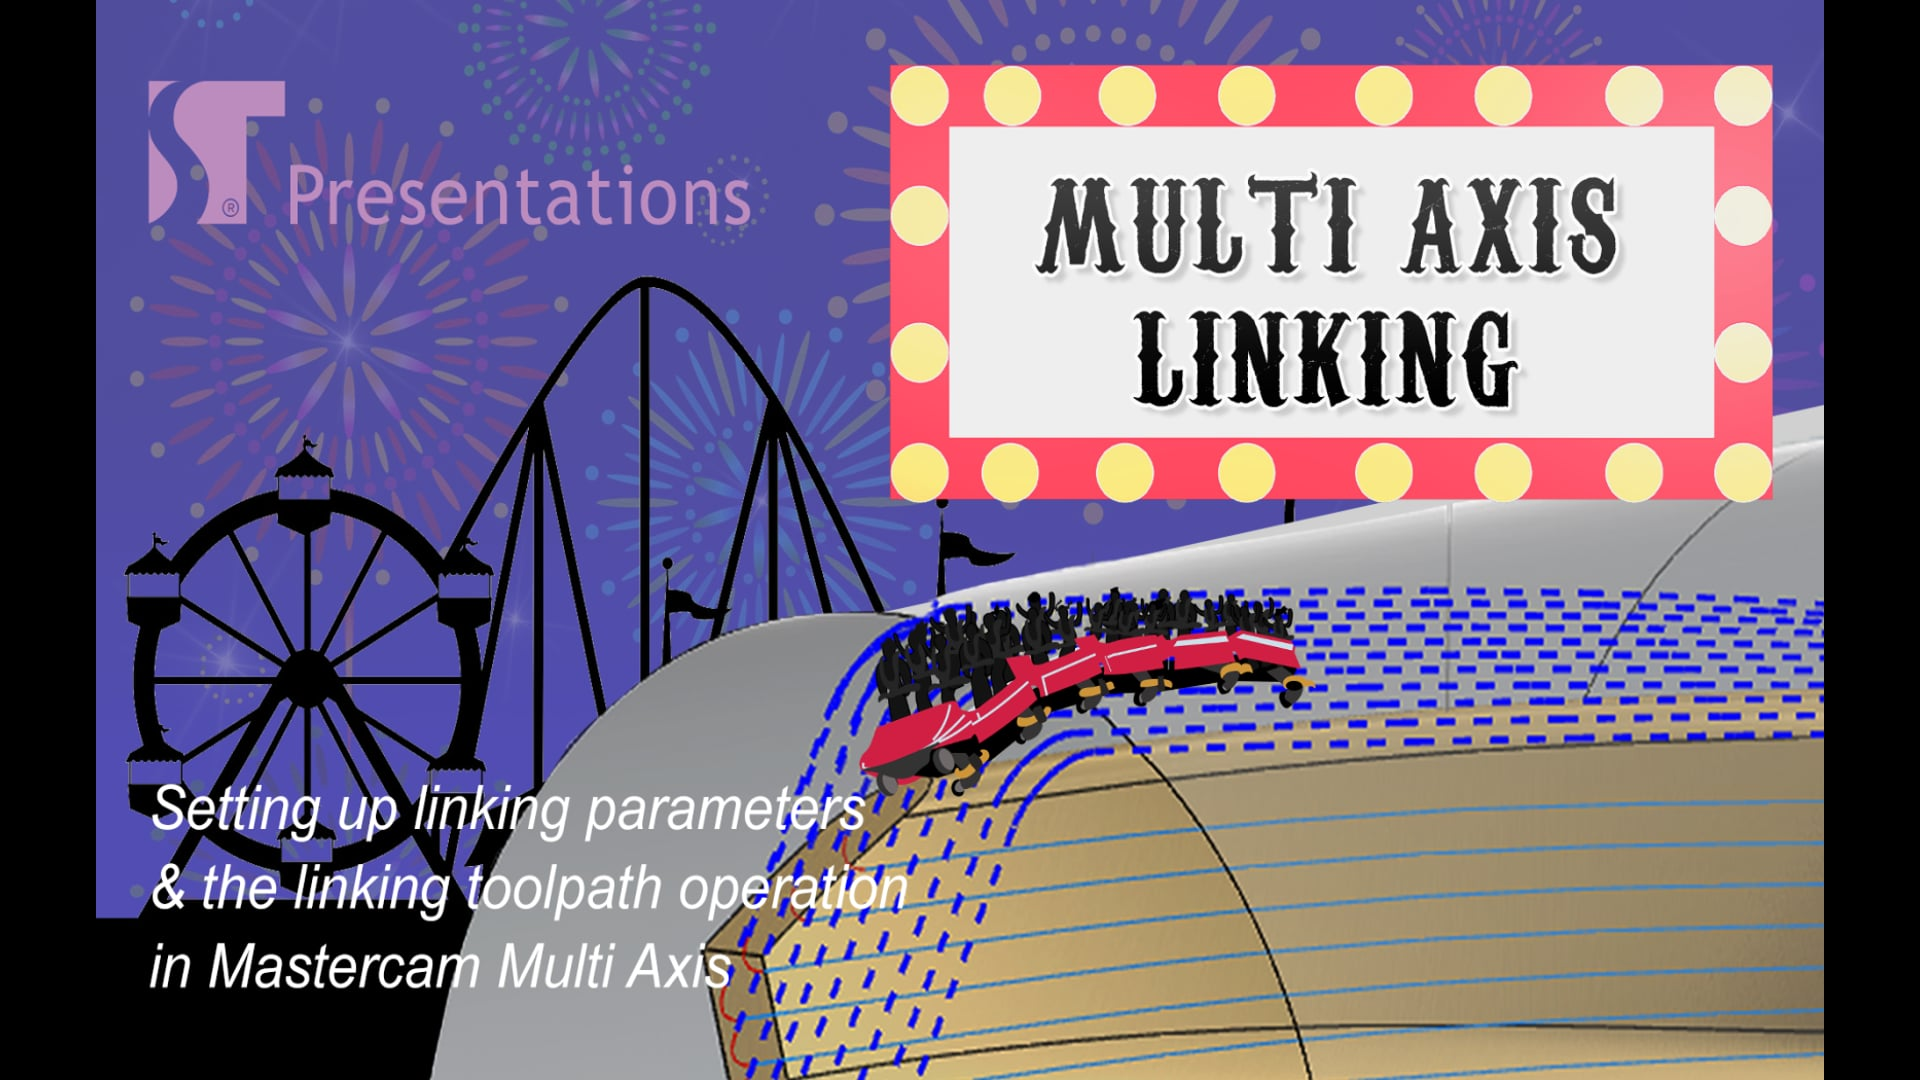 All about Multi Axis Linking